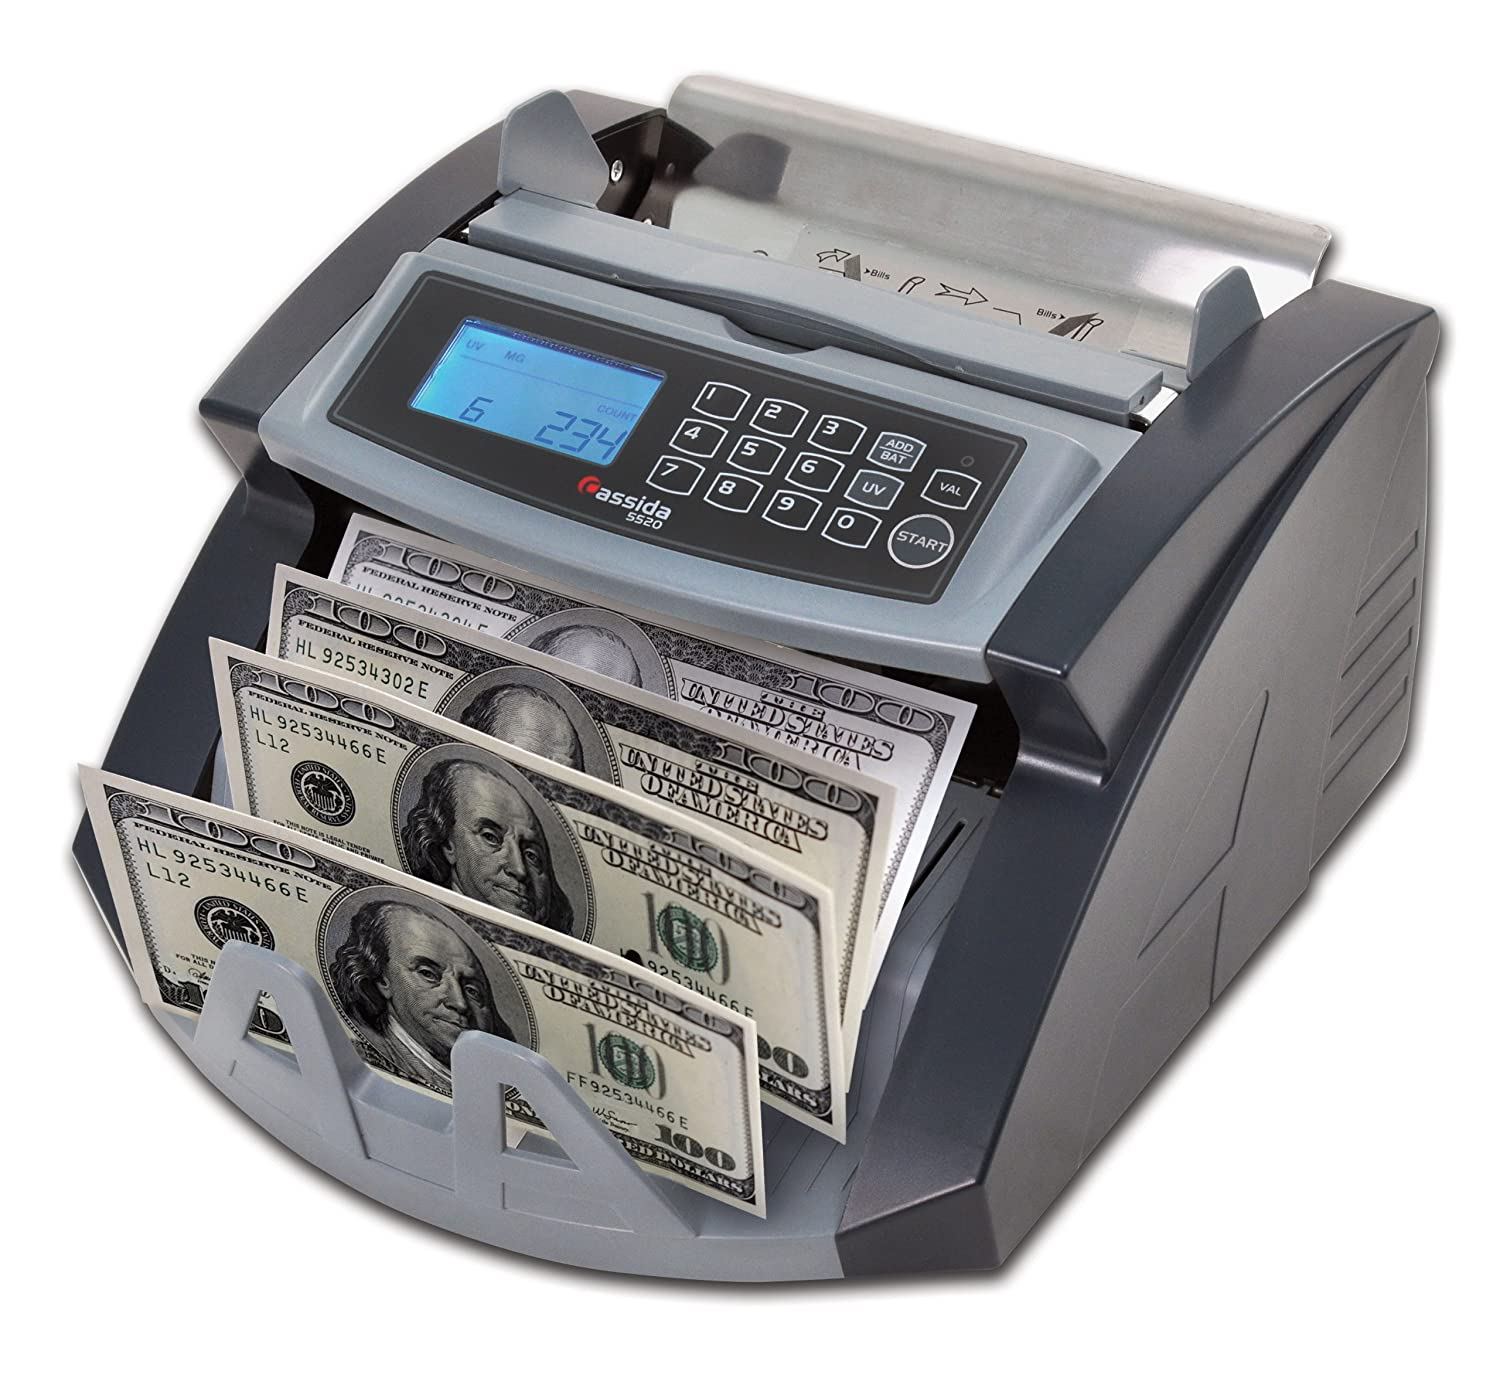 Money Currency Counter Machine Professional Counting Bank